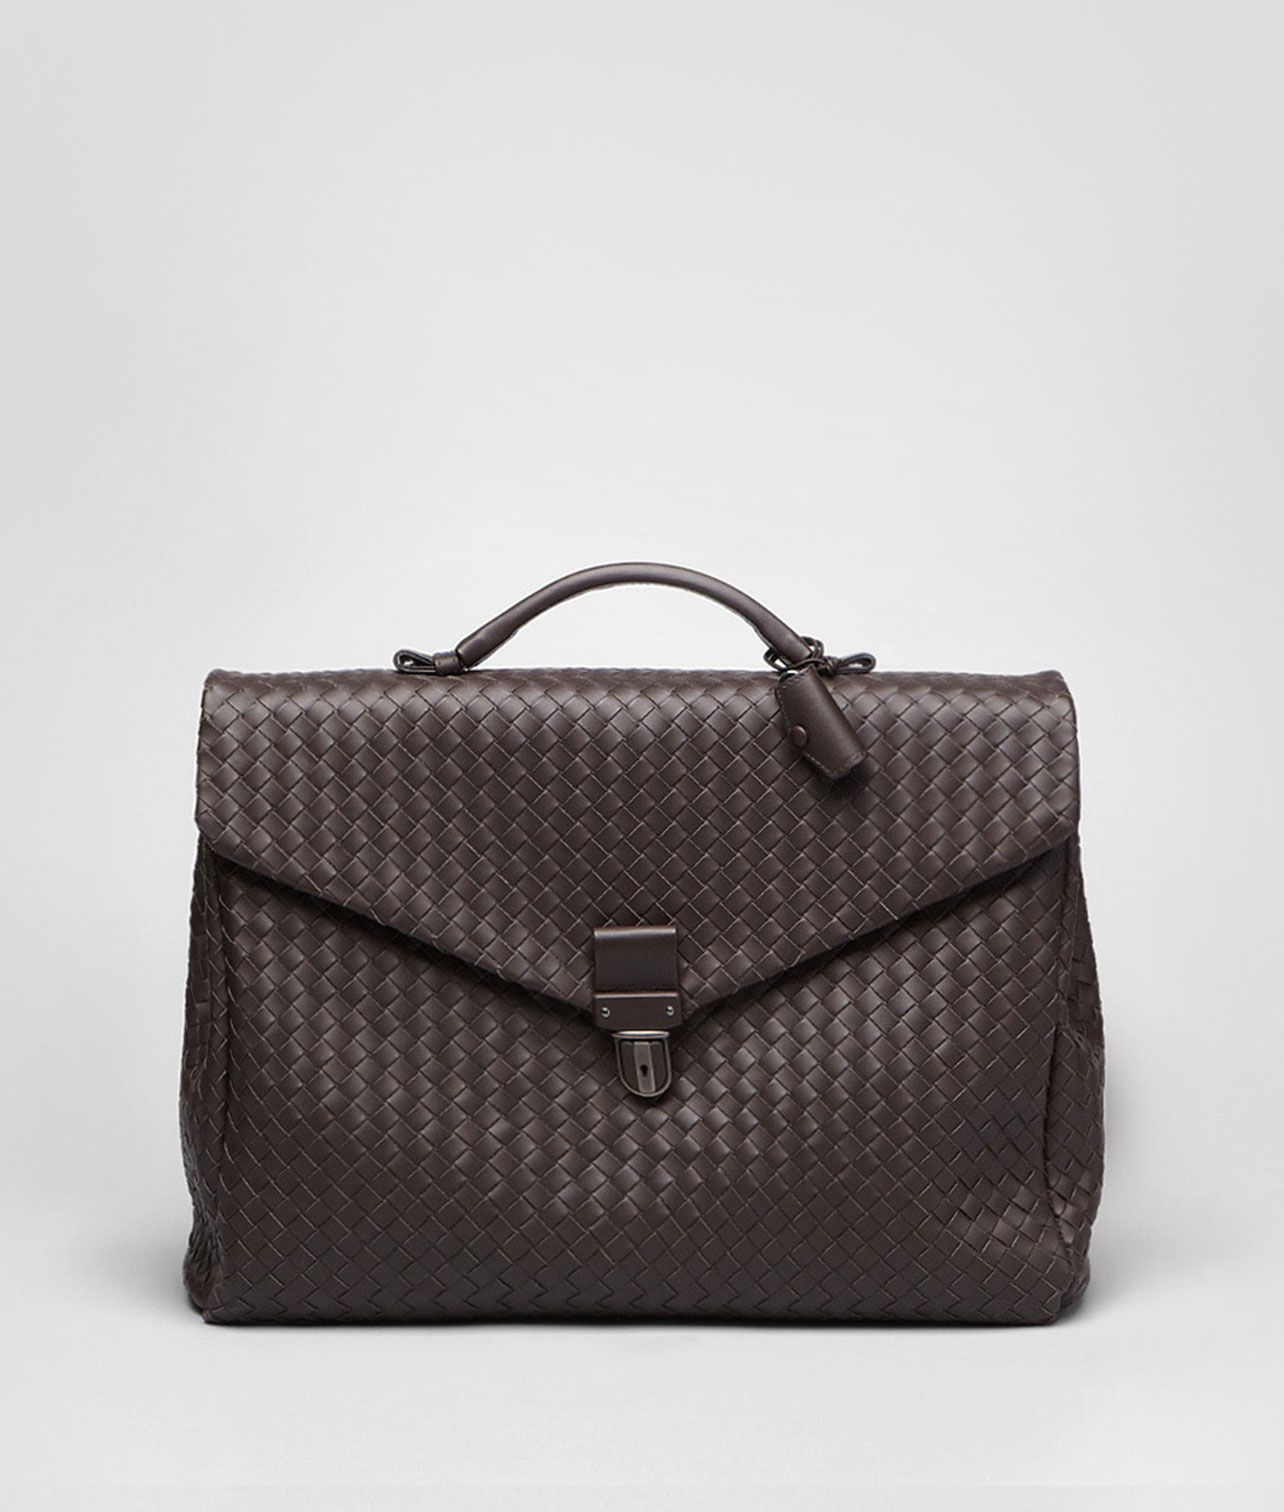 f1ce98d704 Ebano Intrecciato VN Briefcase - Men s Bottega Veneta® Business Bag - Shop  at the Official Online Store United Kingdom